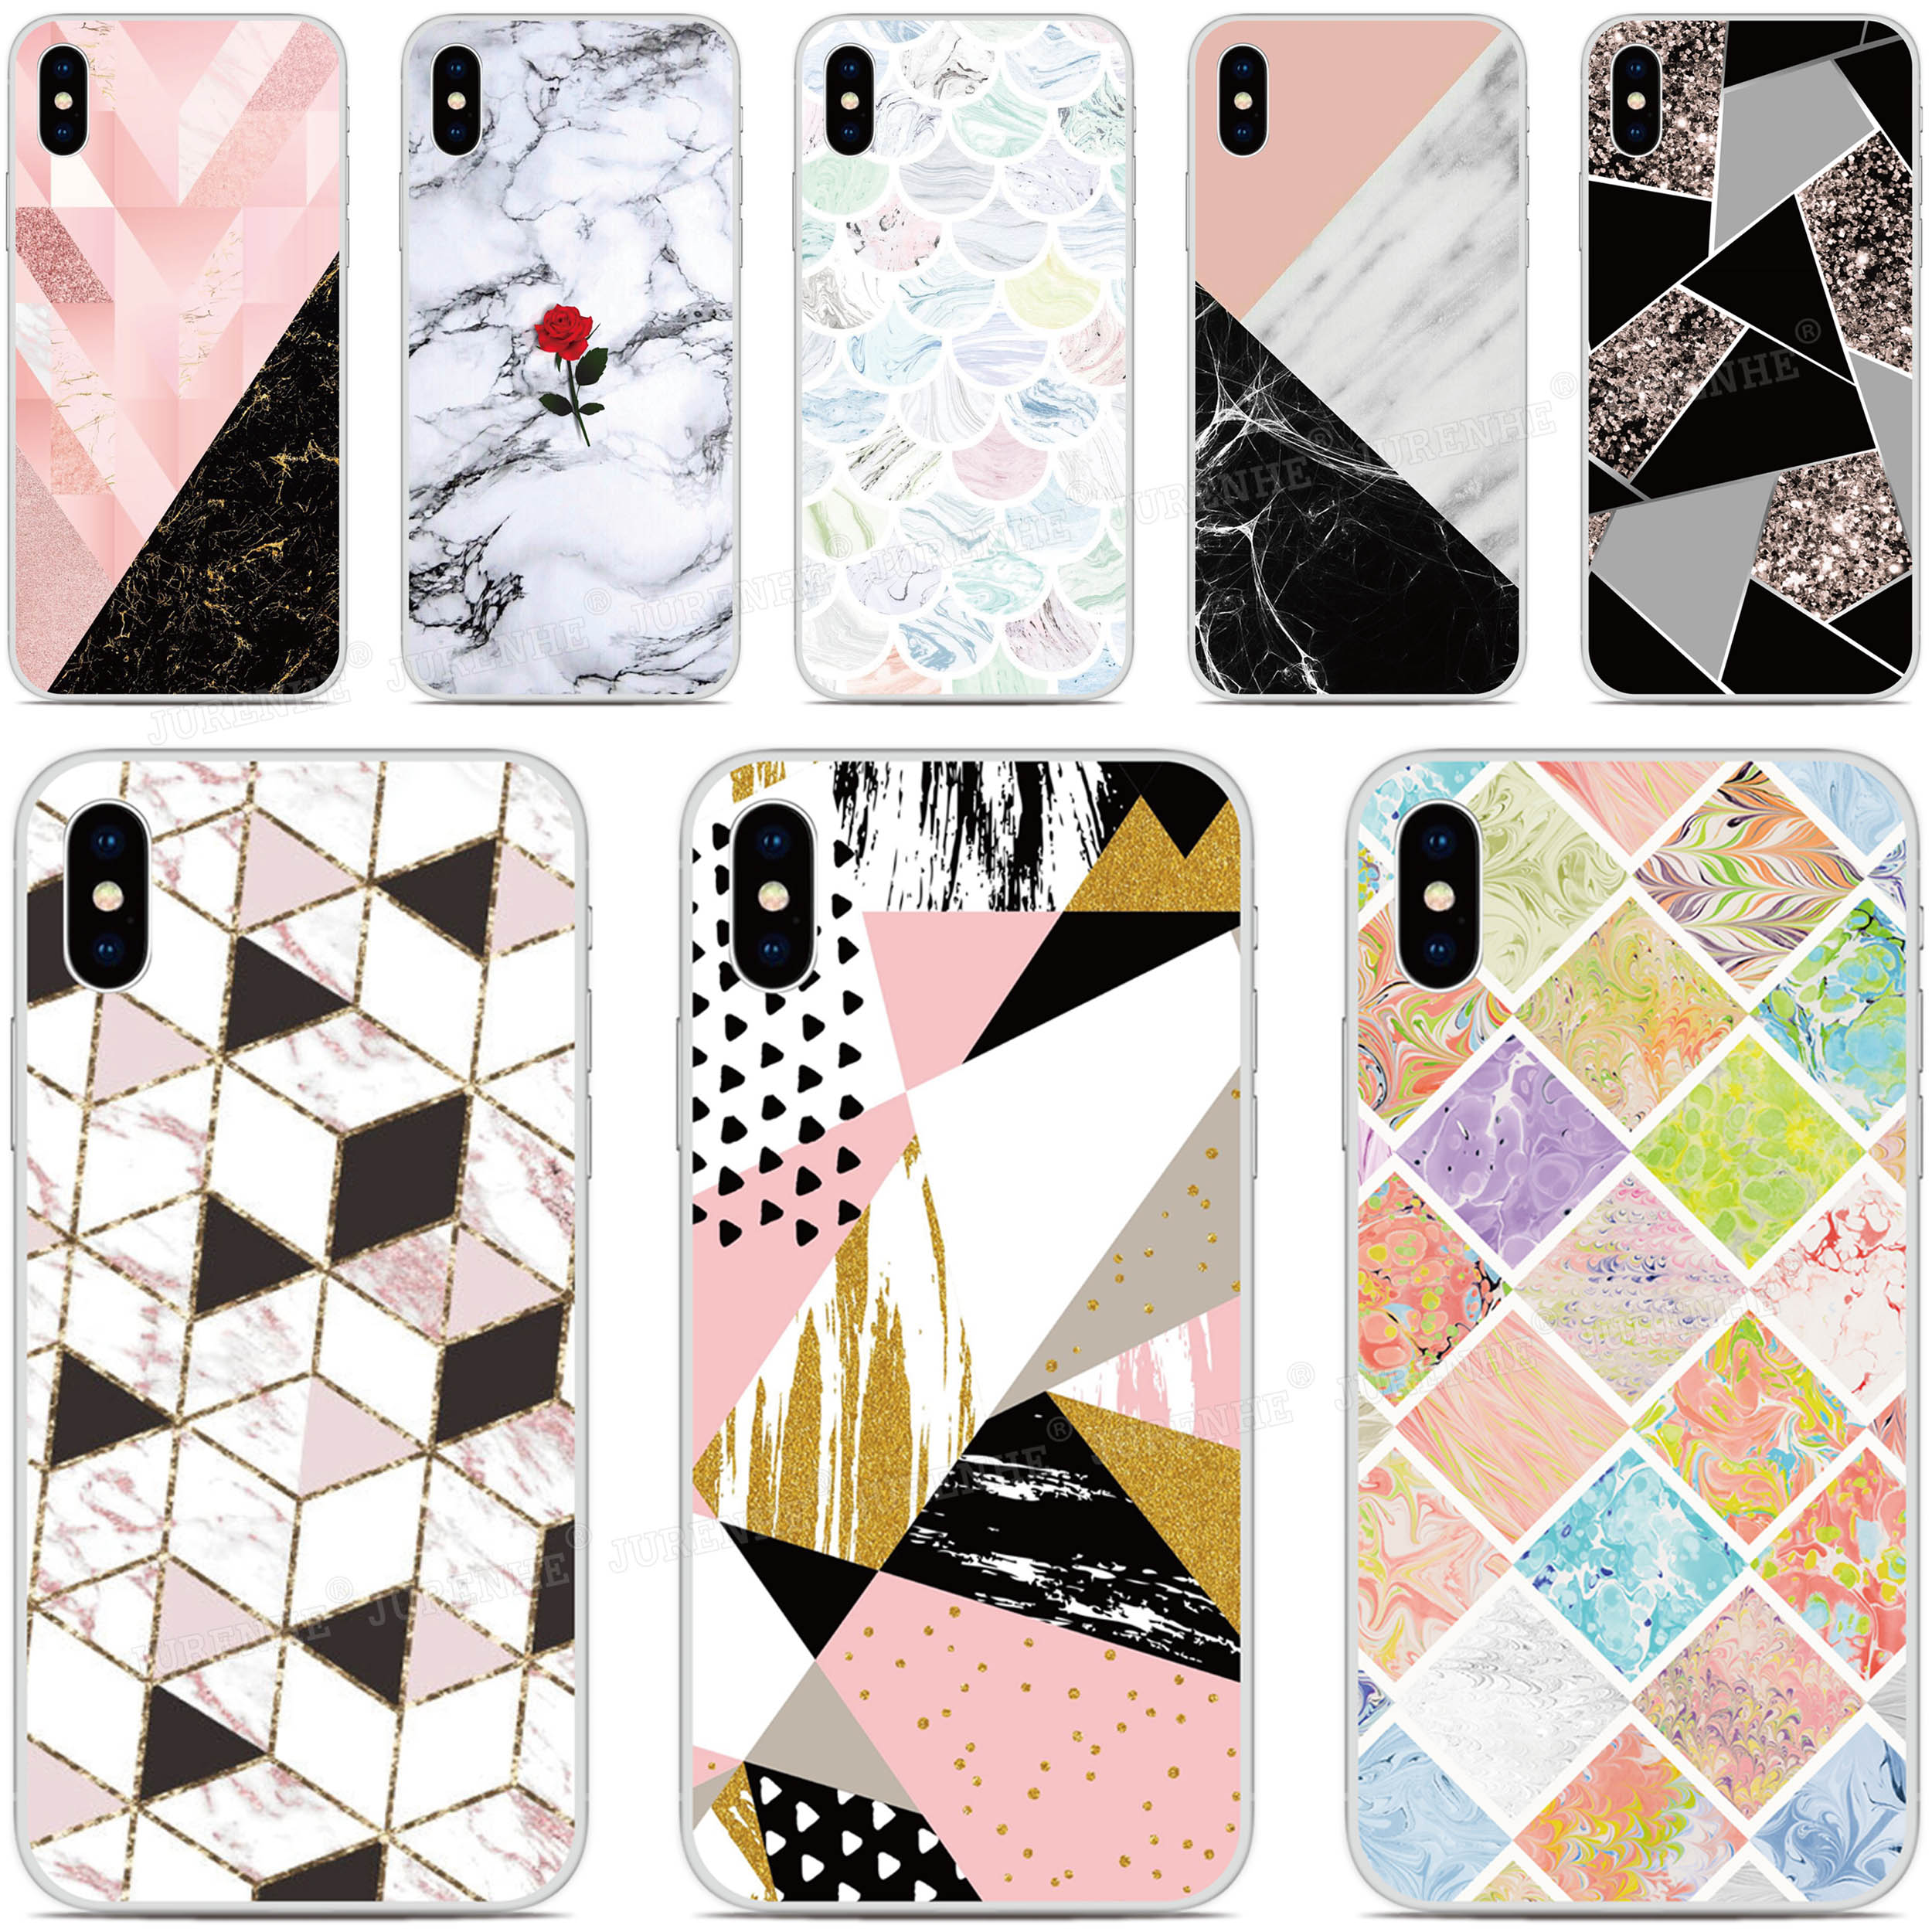 Geometric Marble Phone Case For OPPO Realme X50 5 6 Find X2 Reno A Ace 3 Pro K1 A92S A91 A52 A72 AX7 A5S A31 A8 A9 A5 2020 Cover image